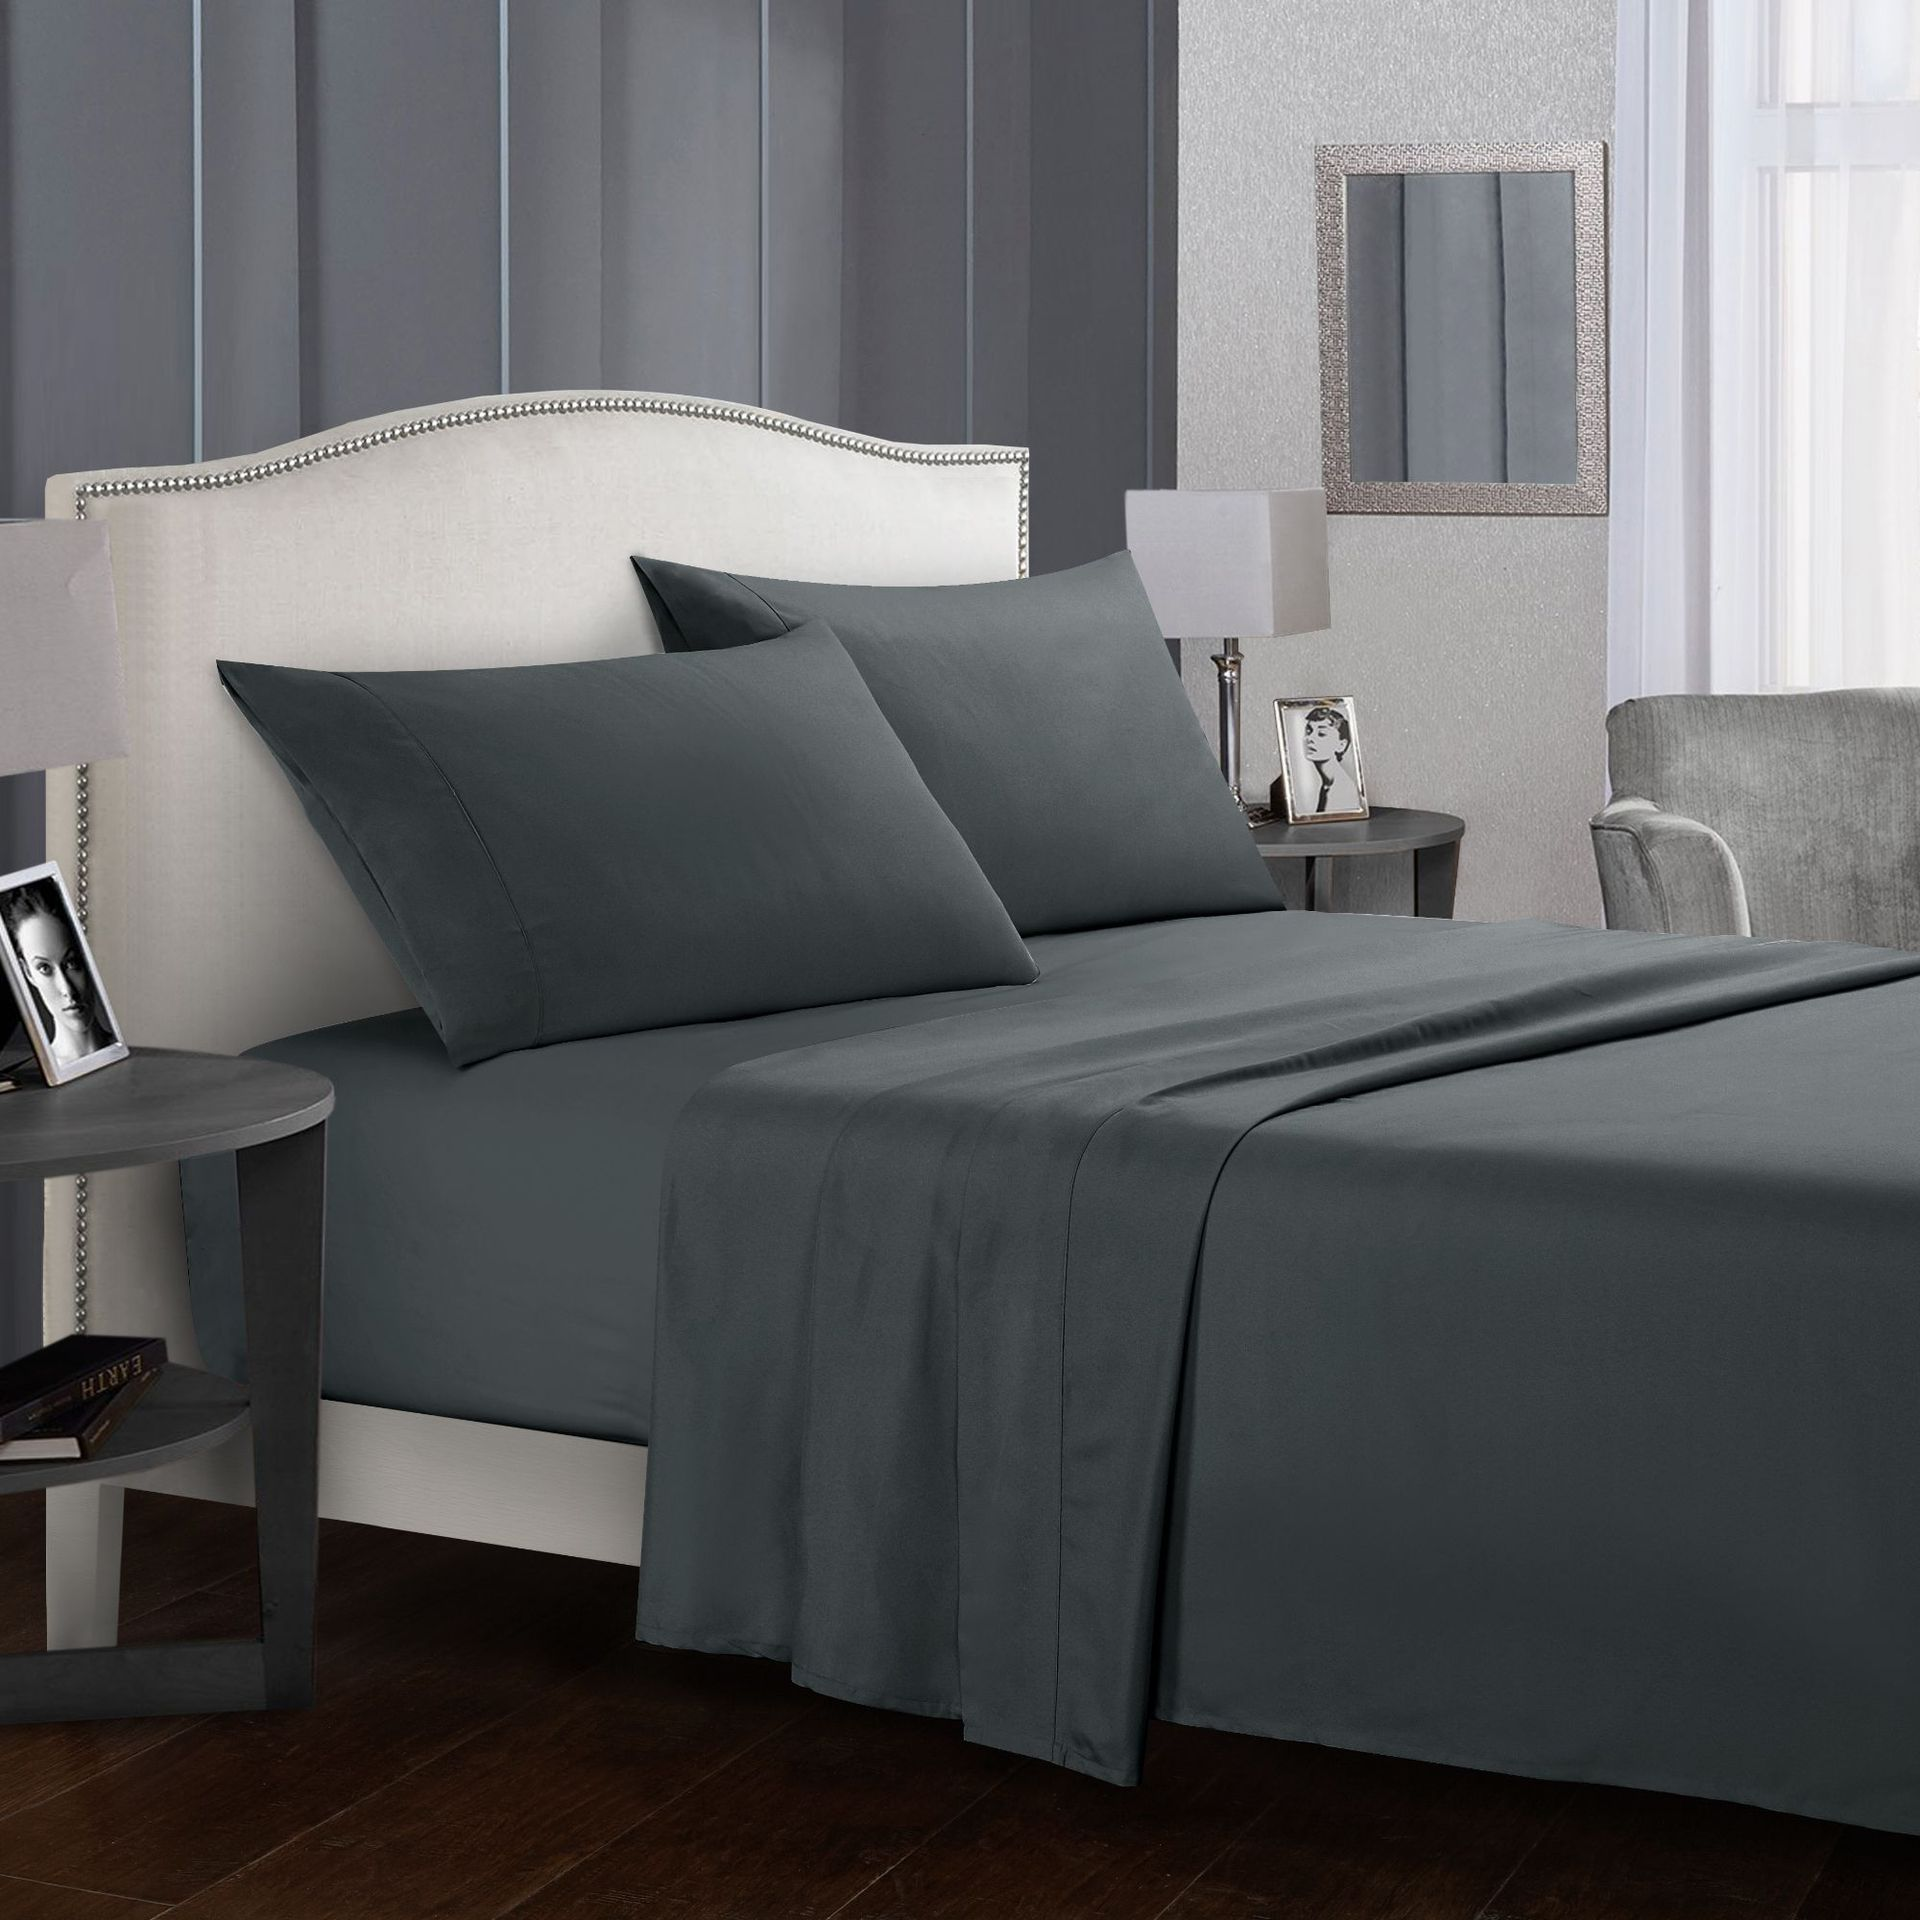 Bedding Set Brief Bed Linens Flat Sheet+Fitted Sheet+Pillowcase Queen/ King Size Gray Soft Comfortable White Bed Set  69